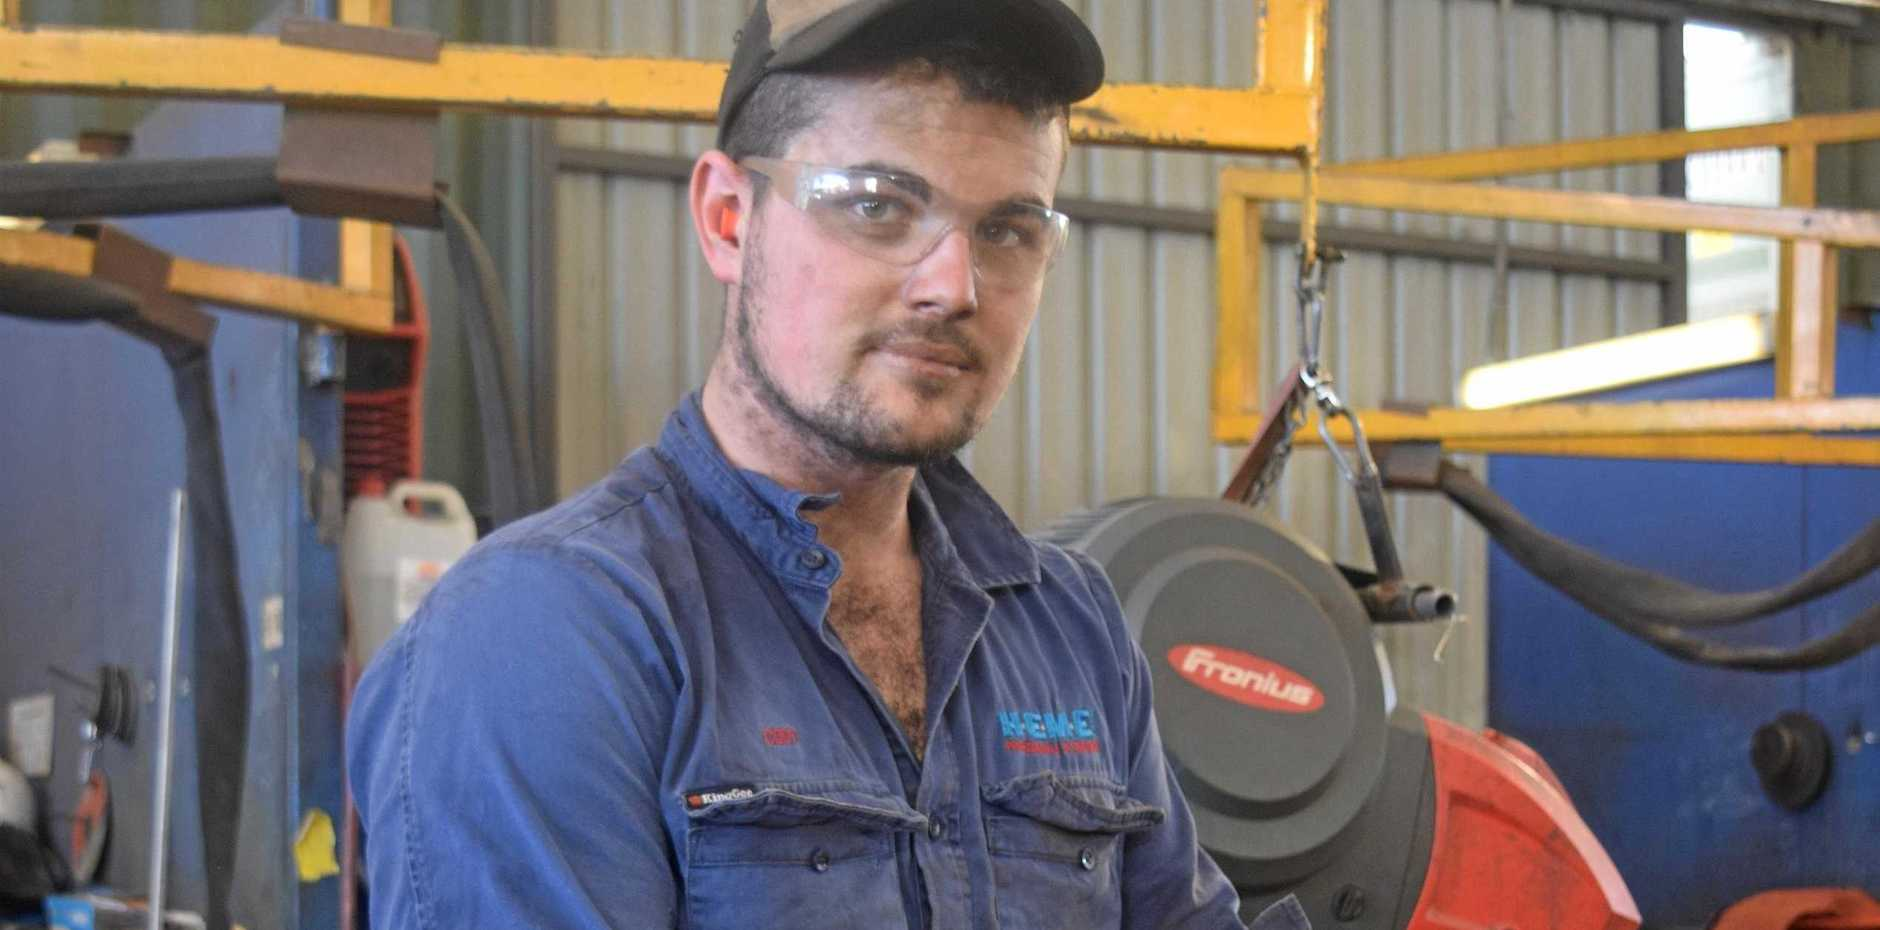 ENCOURAGING OTHERS: HEME boilermaker Cody Holzwart encourages other tradies to look after their health.